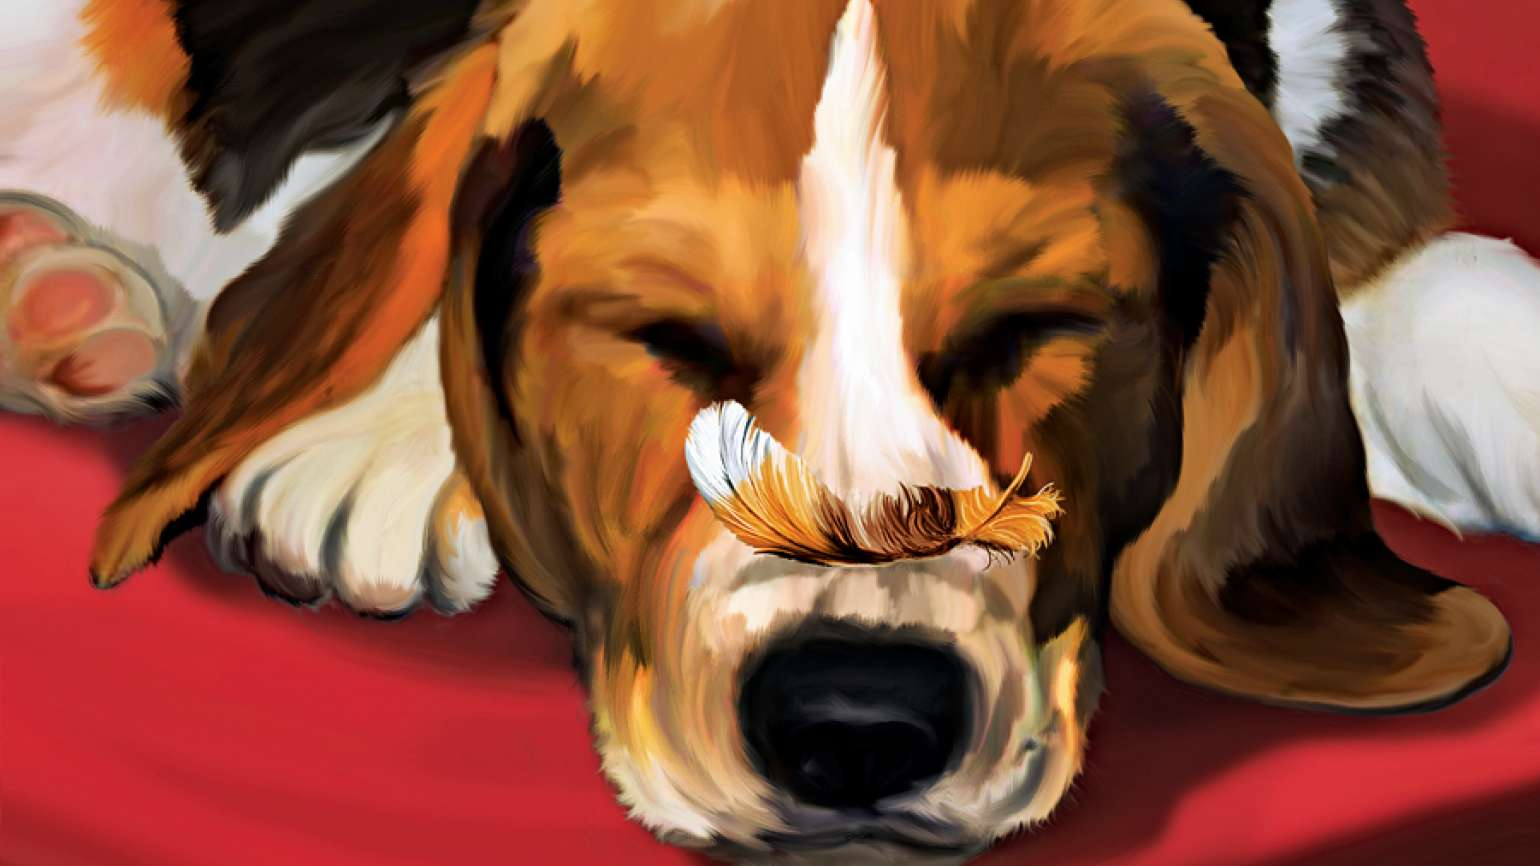 An artist's rendering of a snoozing beagle with a feather resting on its snout